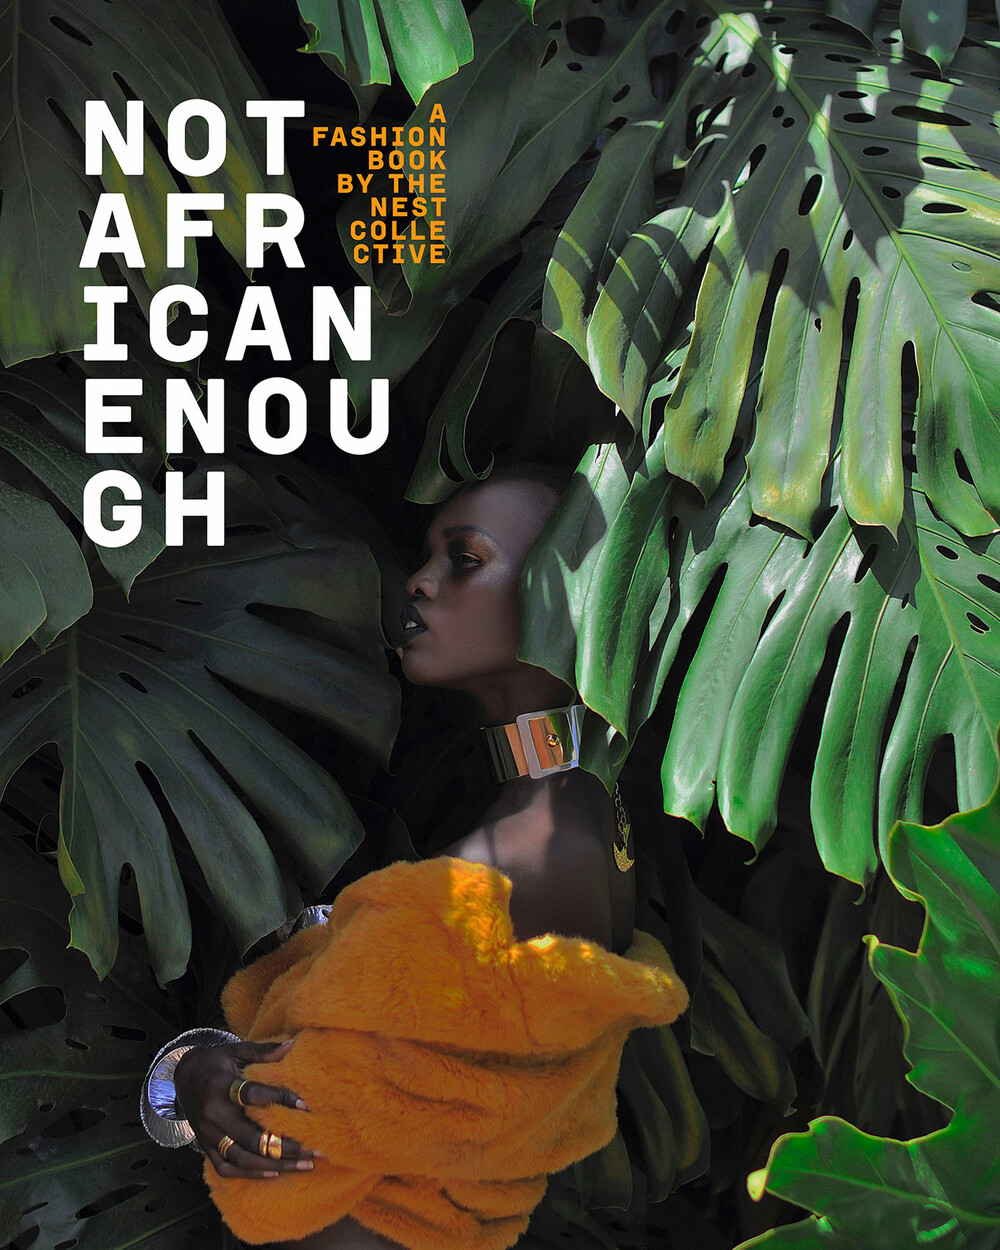 Not African Enough by the NEST collective